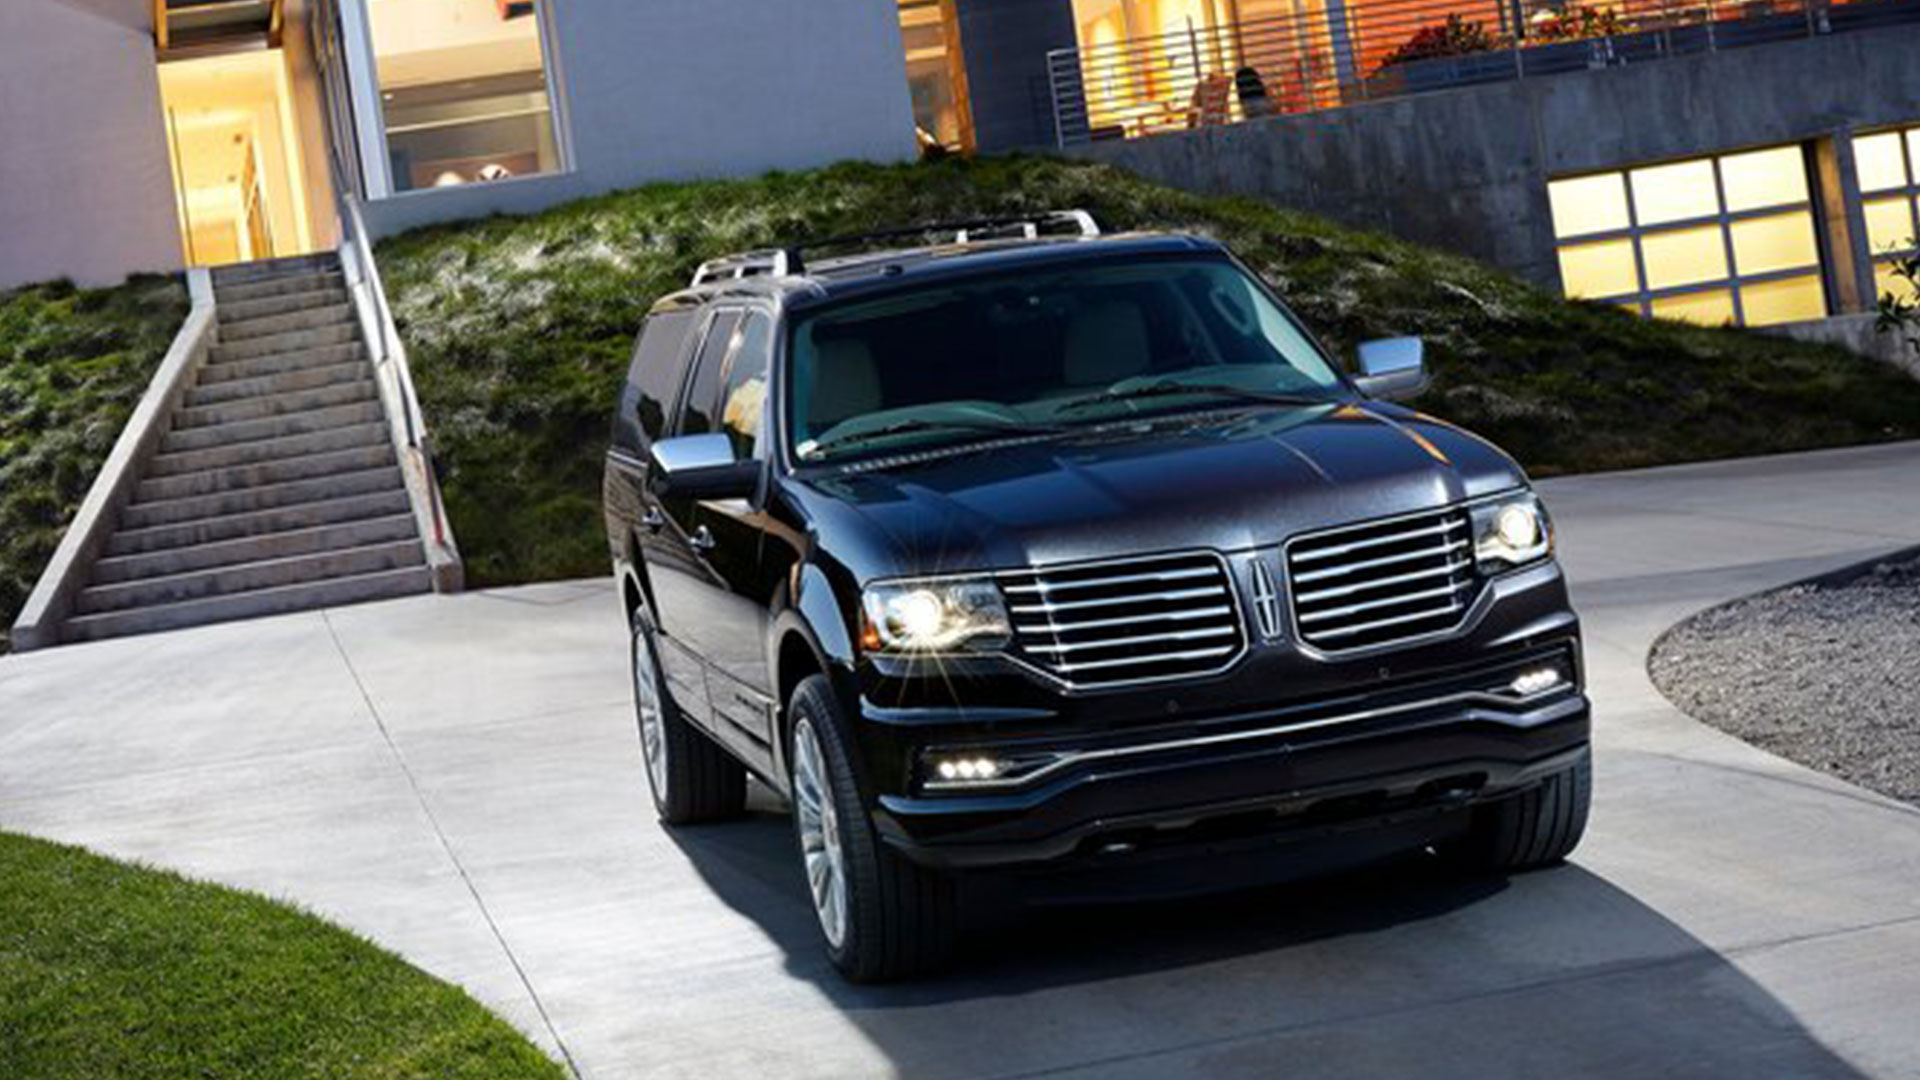 ... 2015 Lincoln Navigator Commercial Black